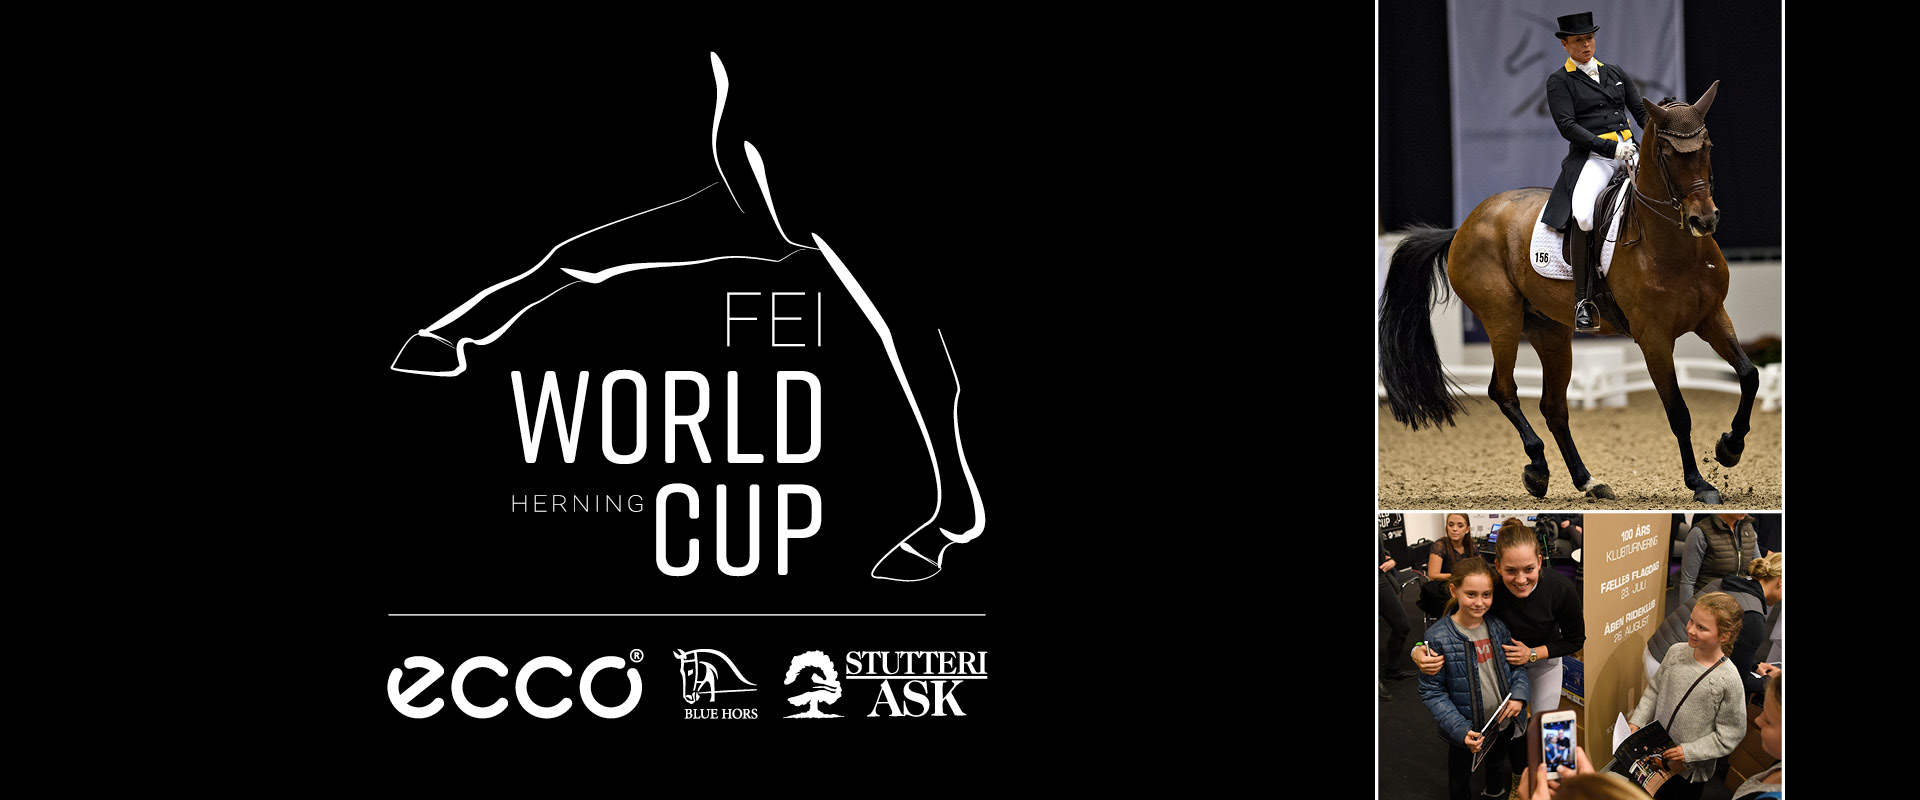 World Cup Herning 2019